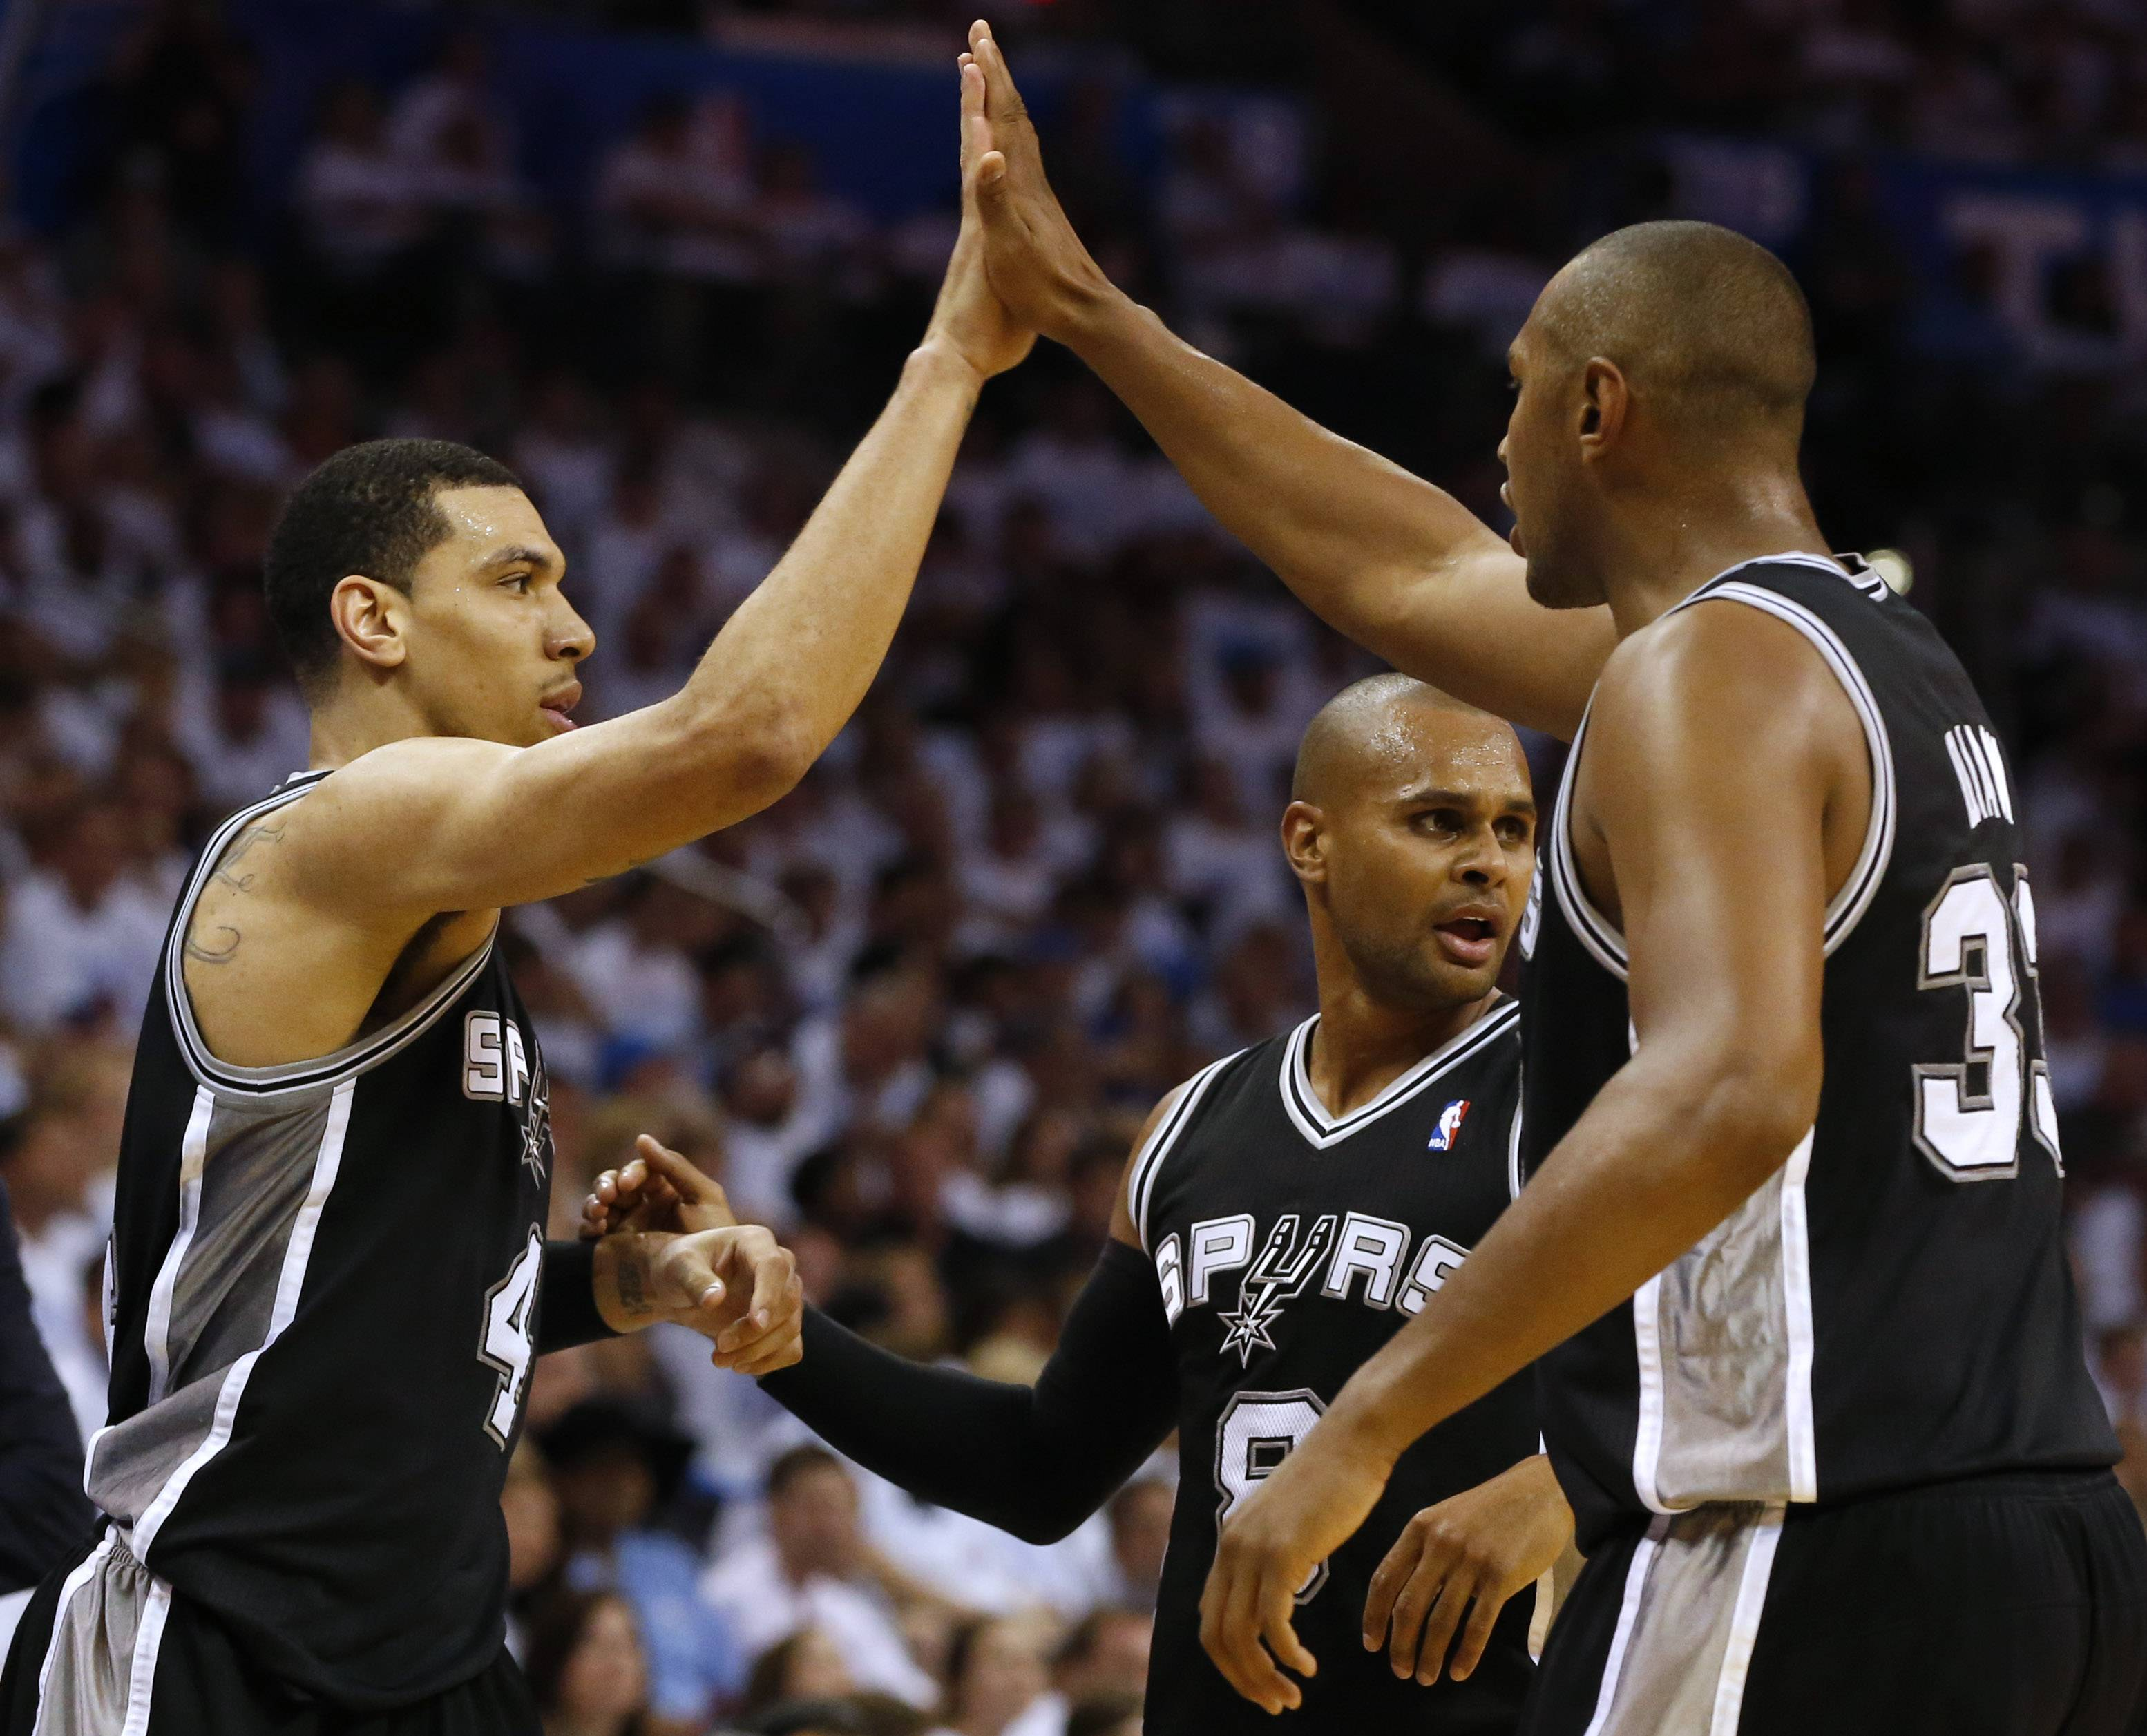 San Antonio's Danny Green, Patty Mills and Boris Diaw celebrate during the second half of Saturday's game against Oklahoma City. The Spurs beat the Thunder 112-107 in overtime to win the Western Conference finals in six games.